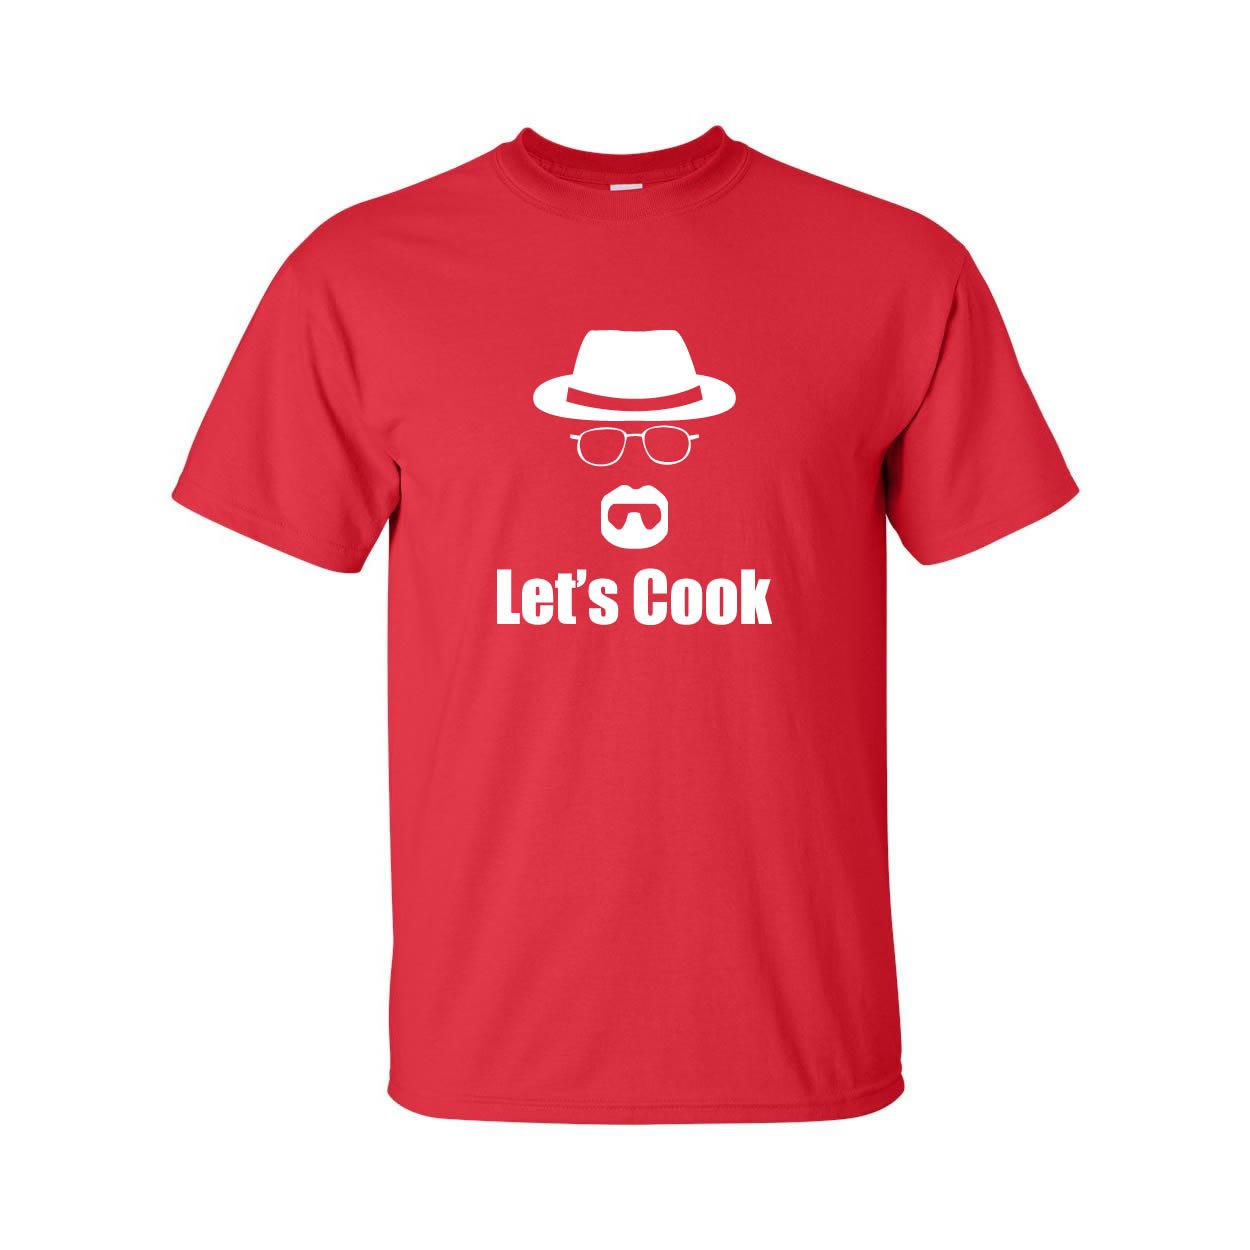 zerogravitee Let's Cook Mustache/Hat/Glasses Adult Short Sleeve T-shirt in Red - XXXXX-Large